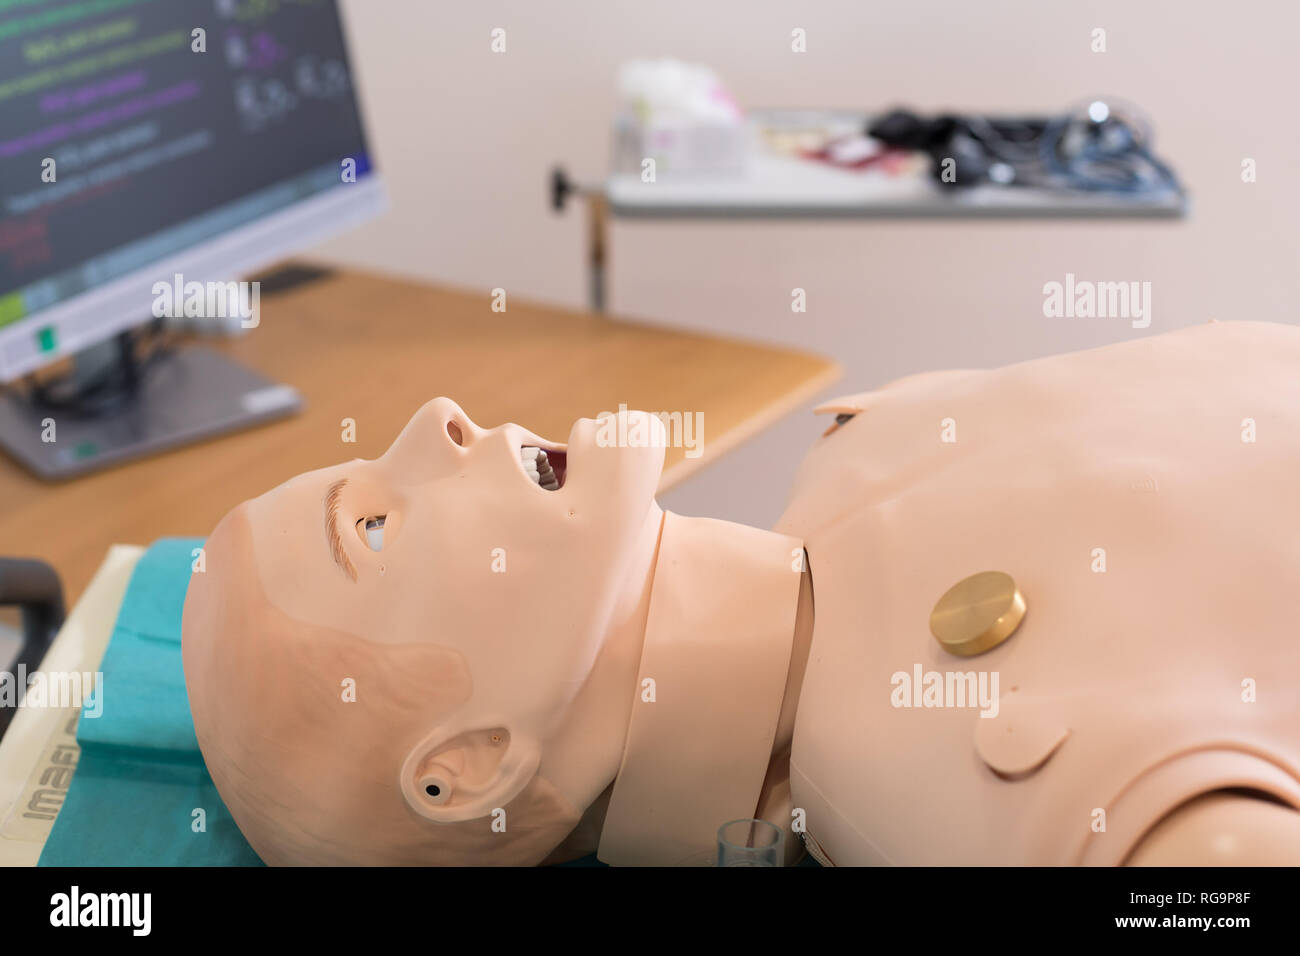 Healthcare patient simulator for modern practical training of health professionals. - Stock Image